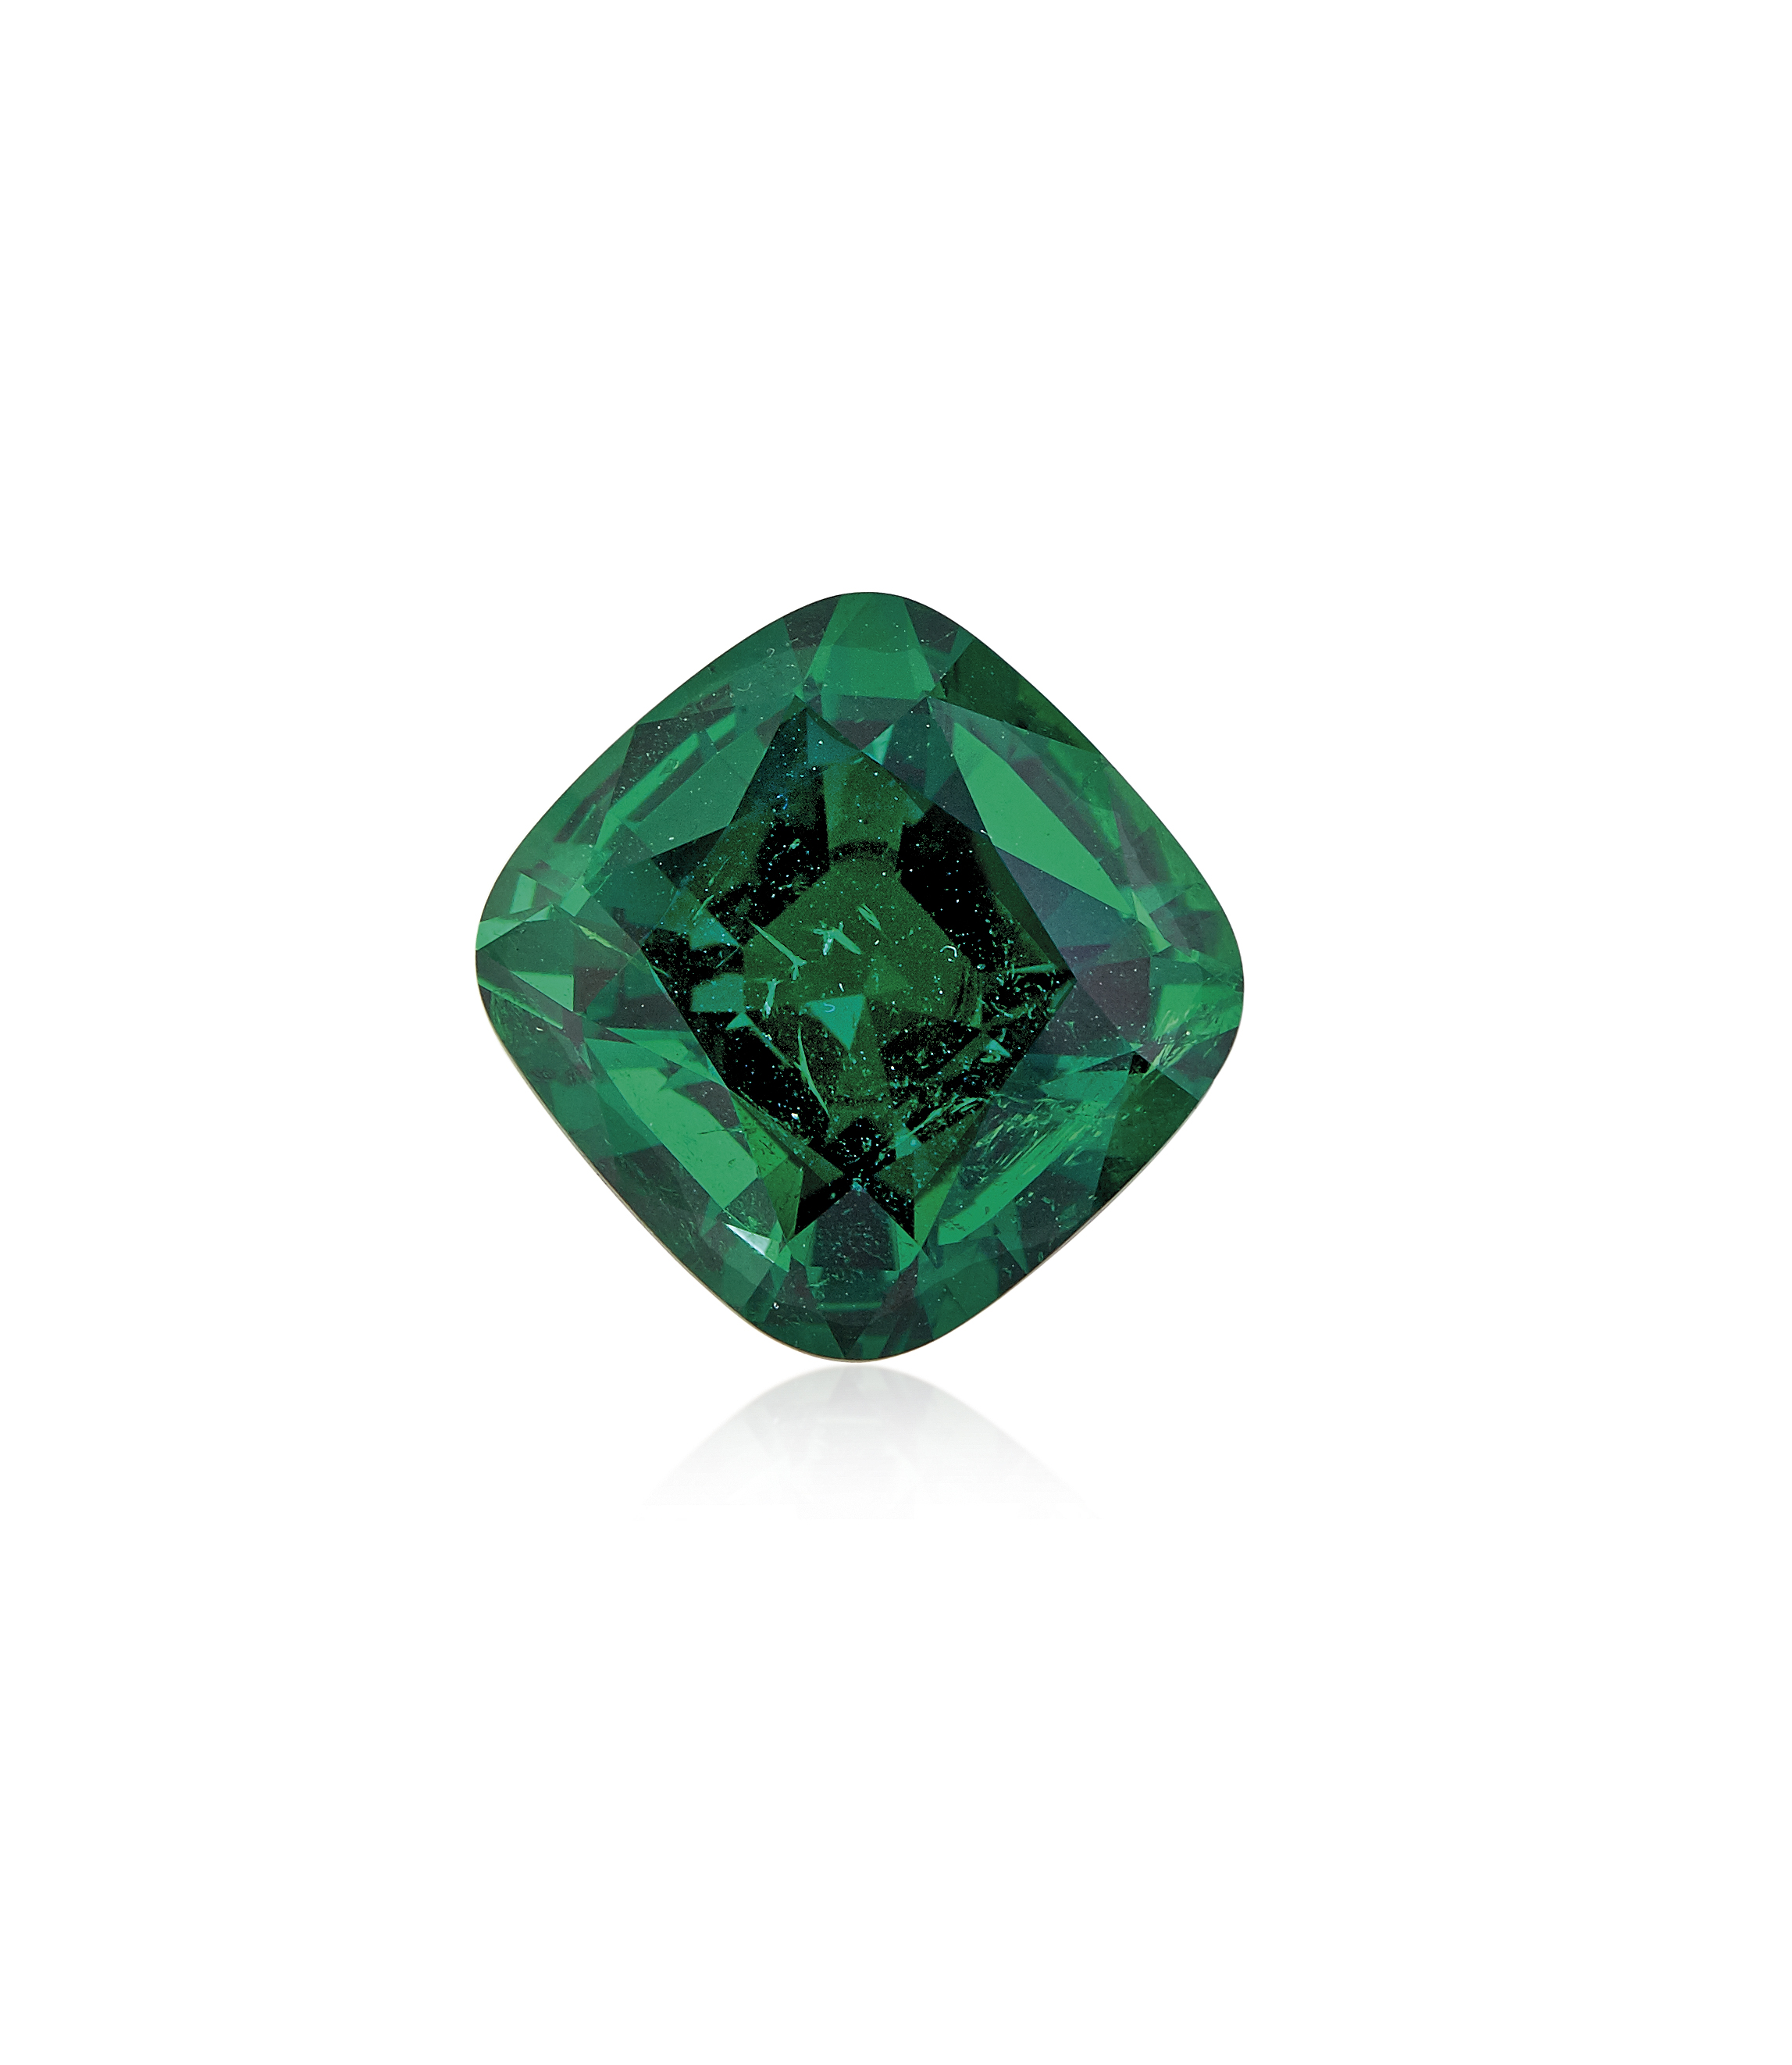 A RARE UNMOUNTED EMERALD